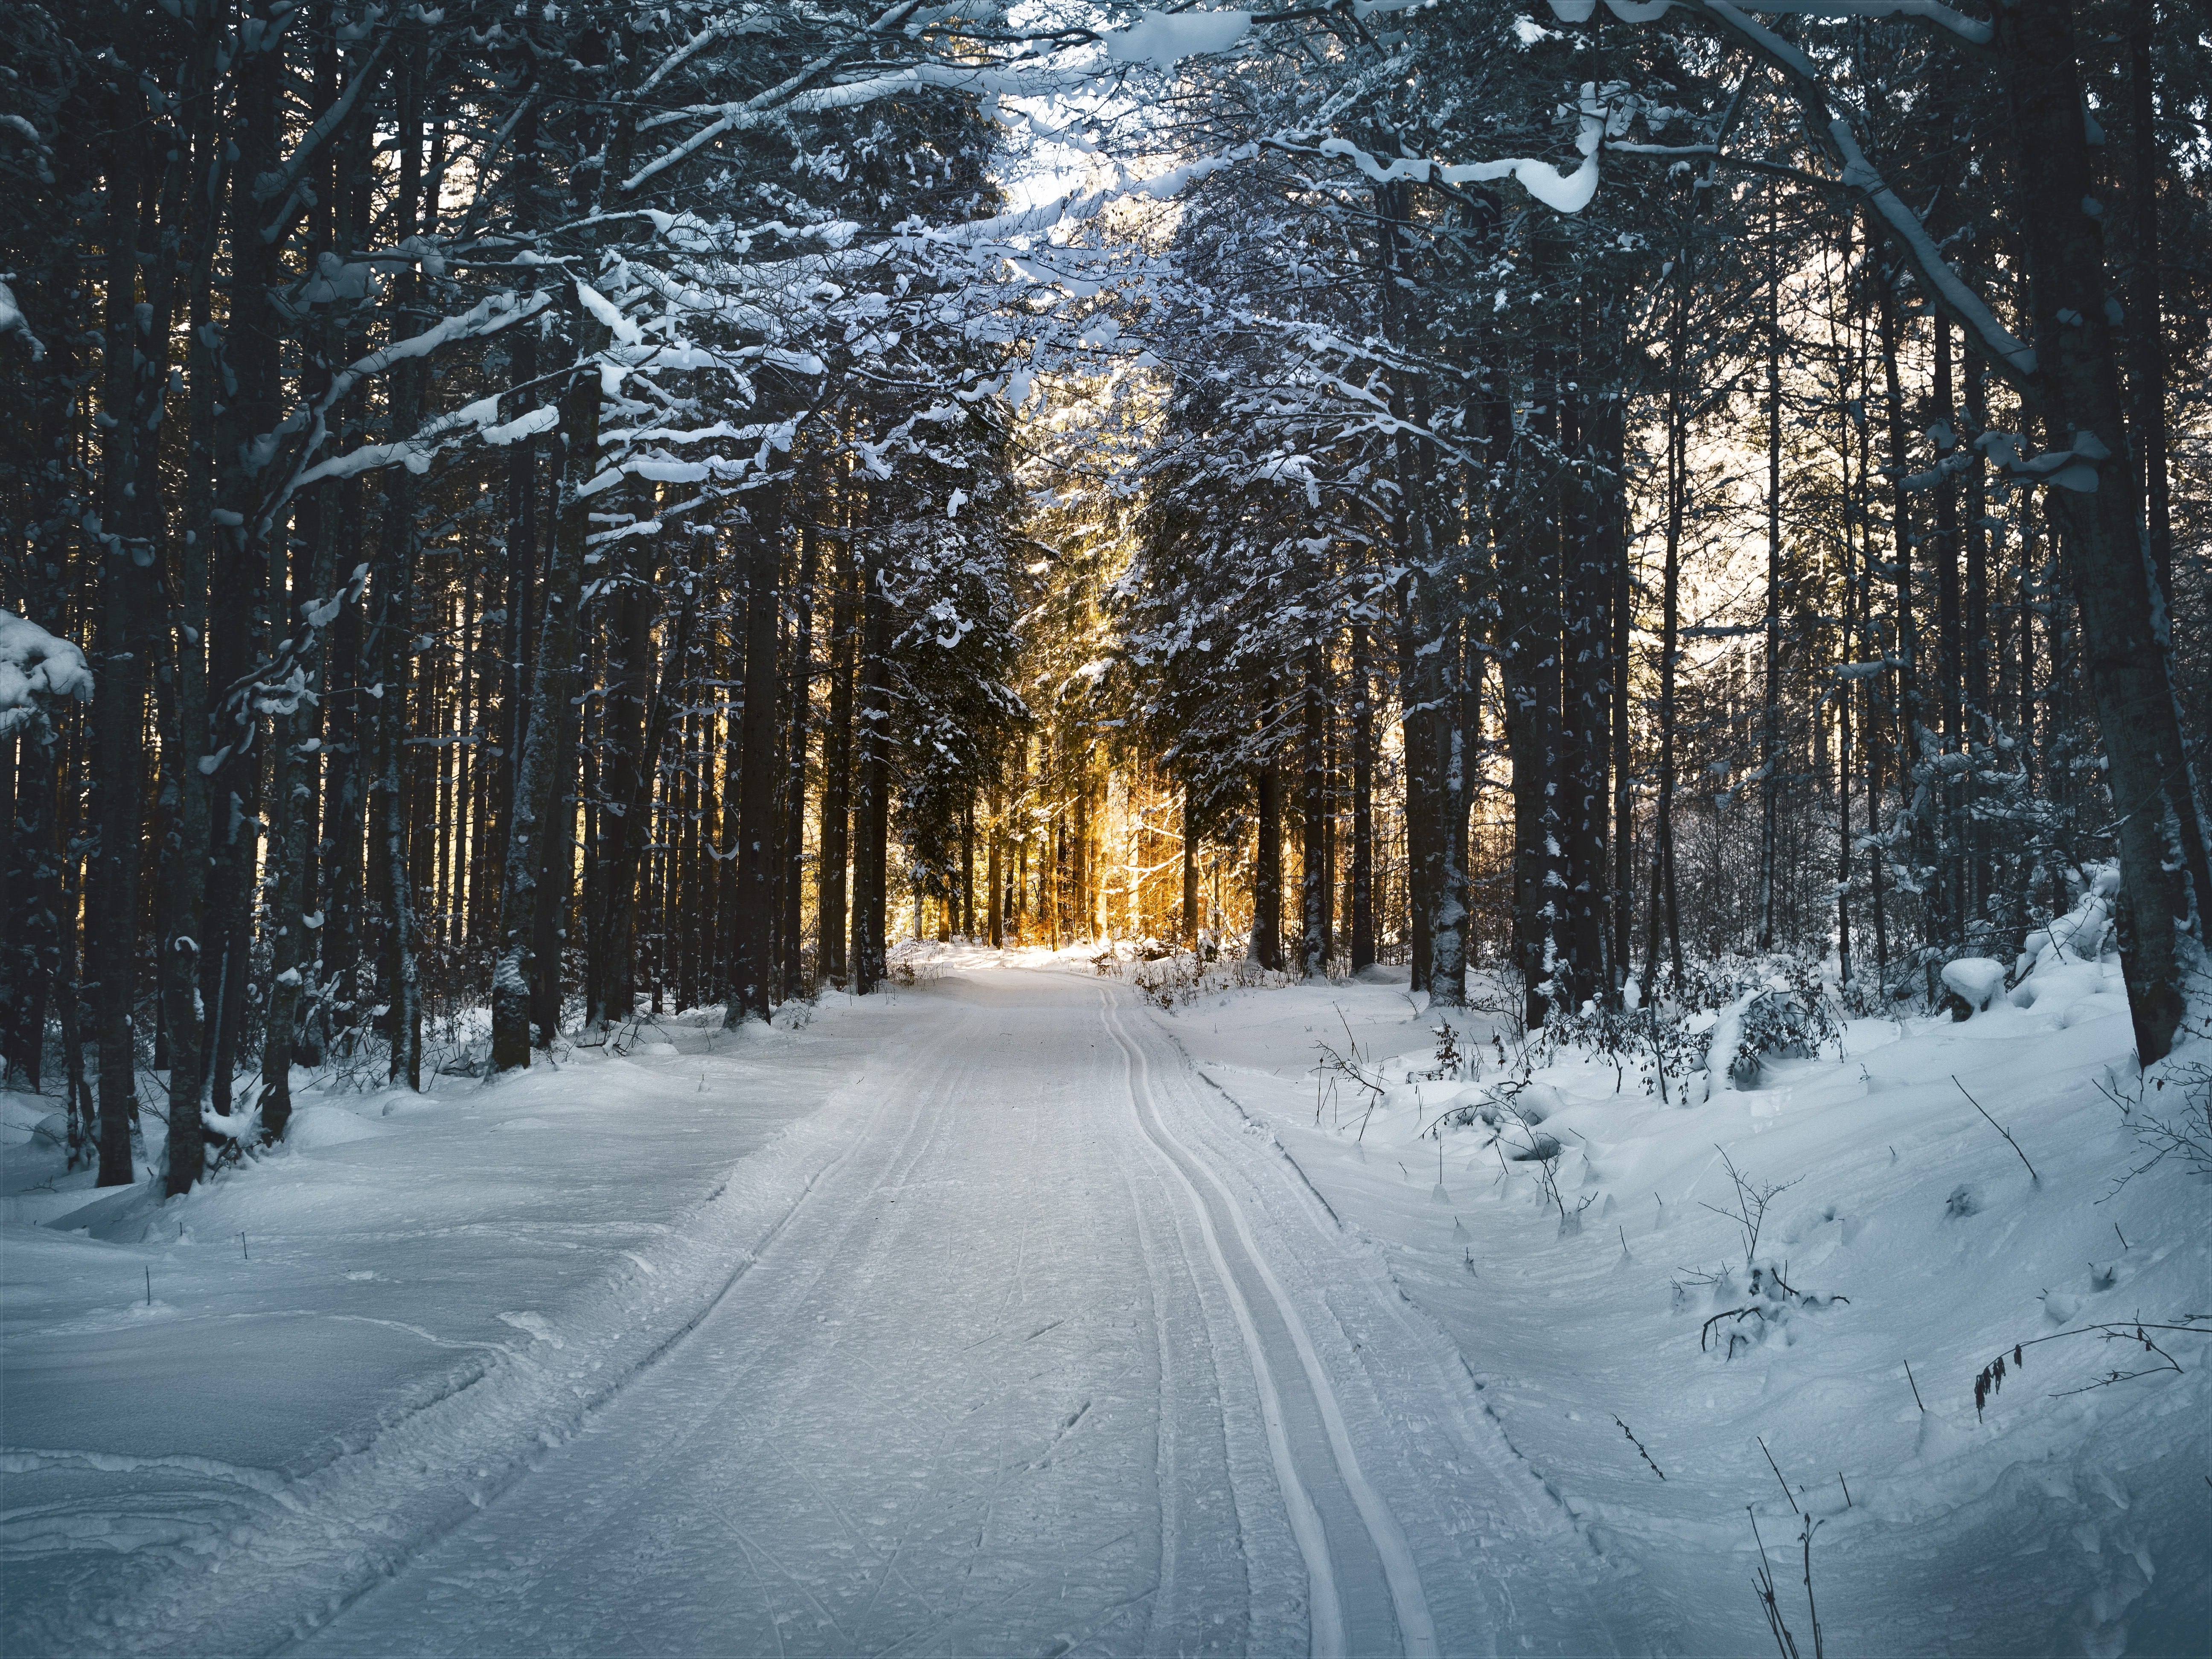 snow-covered trees and road during daytime